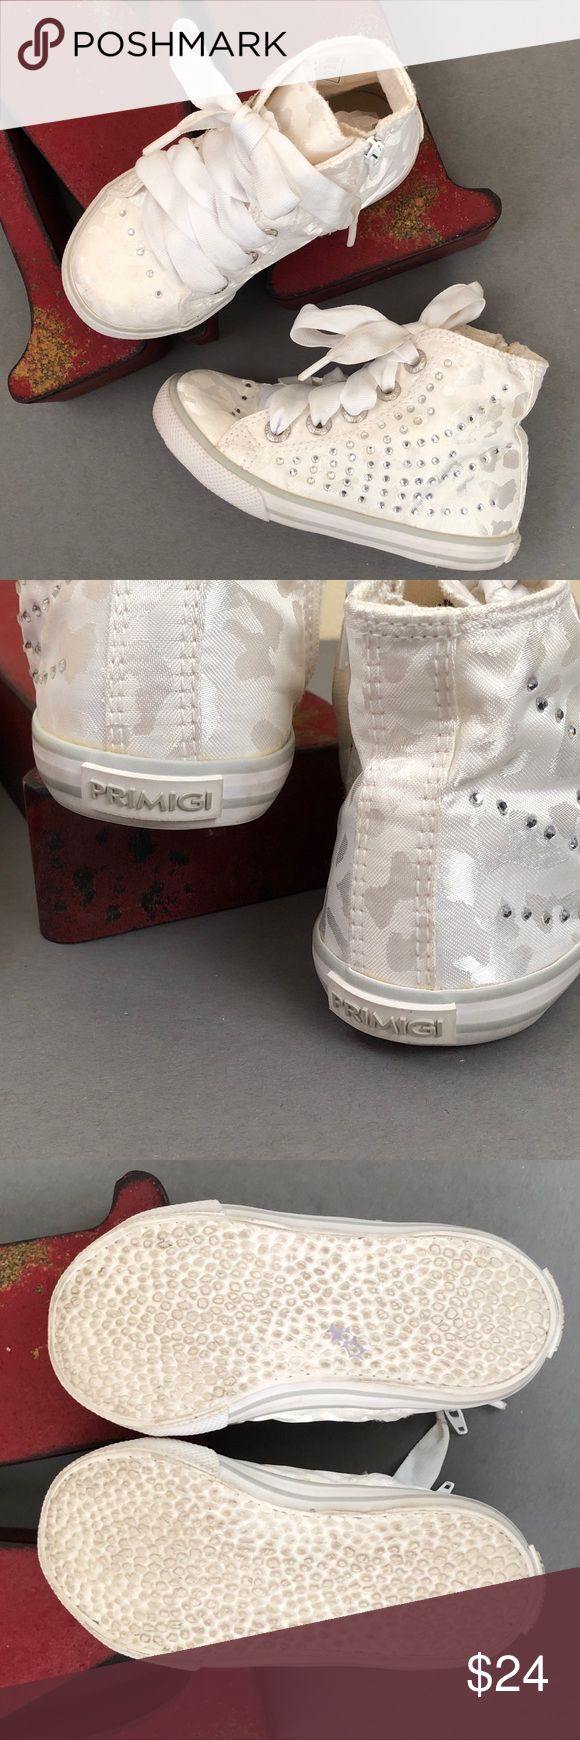 PRIMIGI Satin Embellished High-Top Sneakers Sweet toddler girl sneakers with sparkly. Fun alternative to patent Mary Janes for all your little ones dressed up occasions.  European size 24/US little girl 7.5 Good preowned condition: faint staining on side of shoe and laces as pictured. Primigi Shoes Sneakers